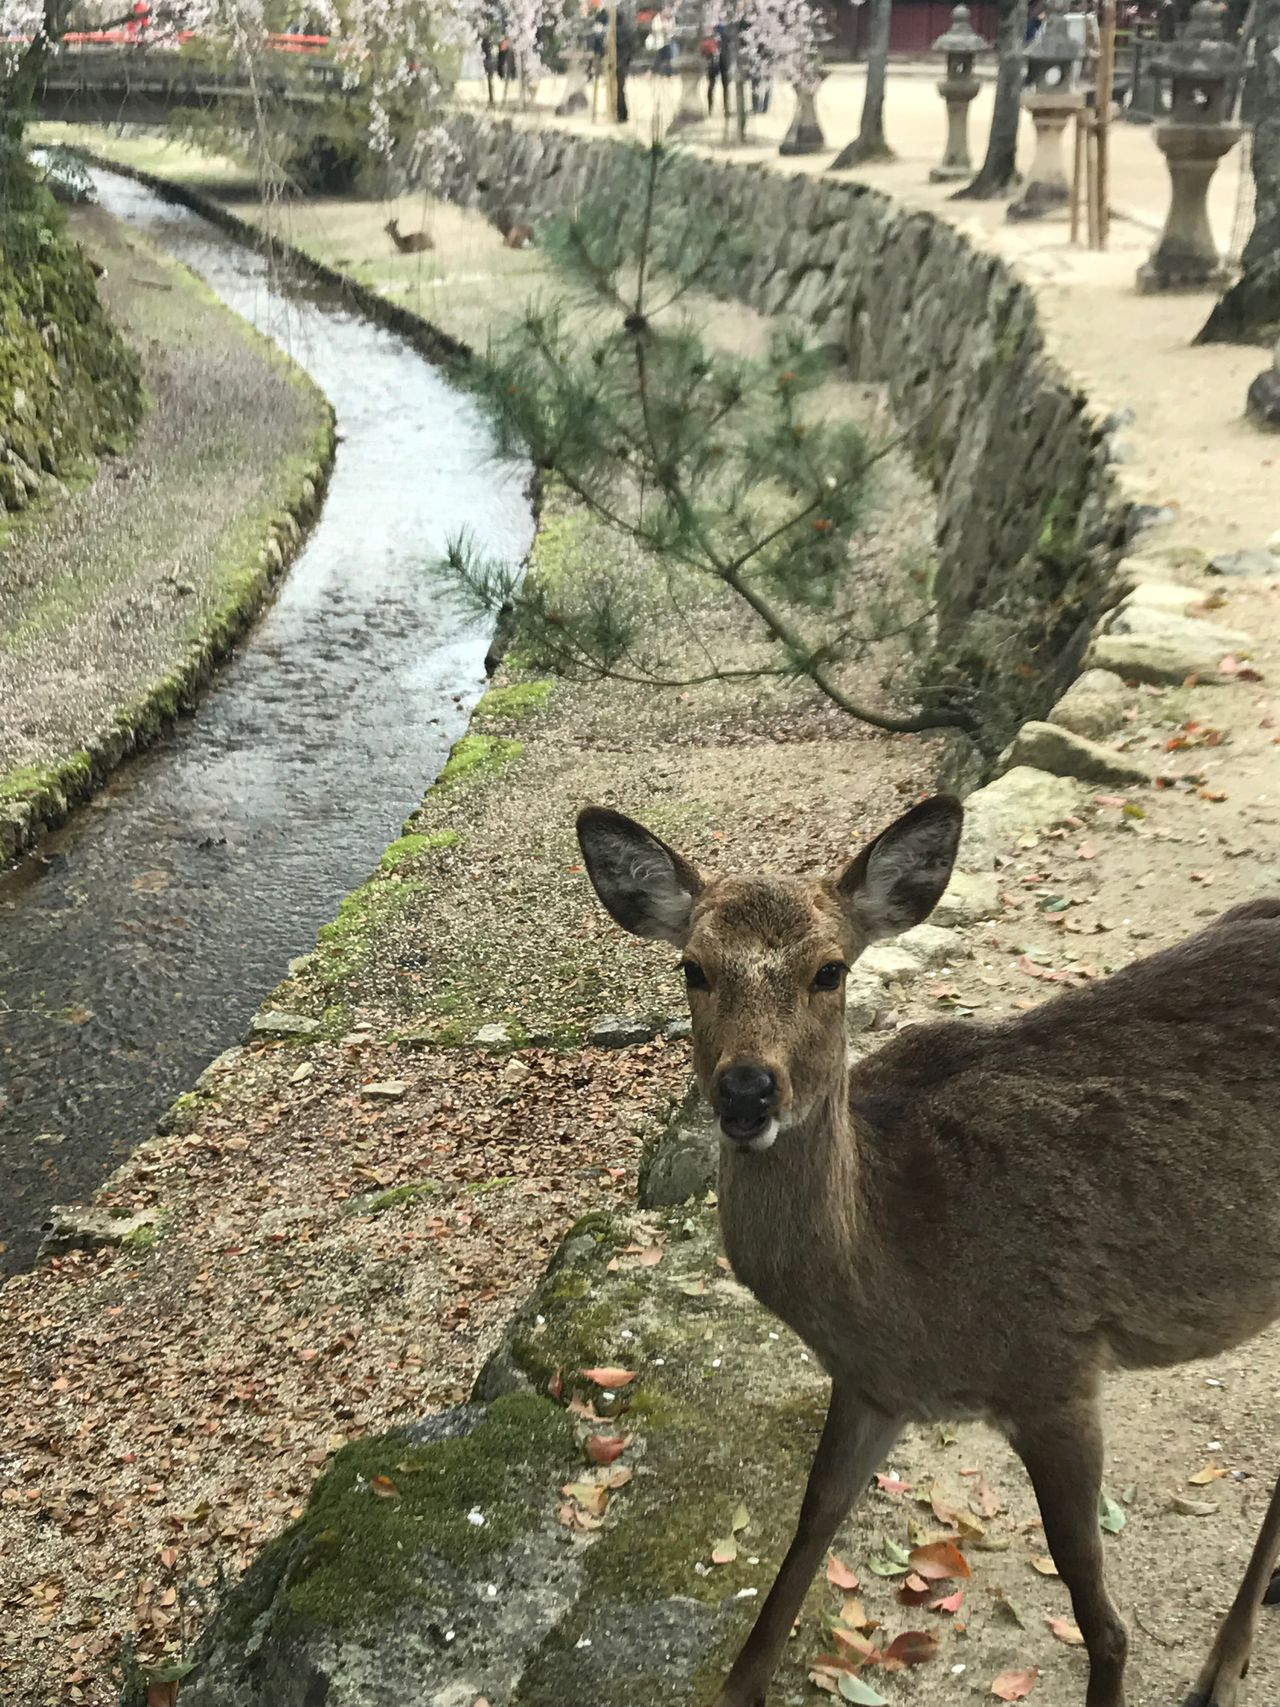 One Animal Animal Themes Day Animals In The Wild Animal Wildlife Outdoors Mammal Looking At Camera Portrait Nature Standing No People Water